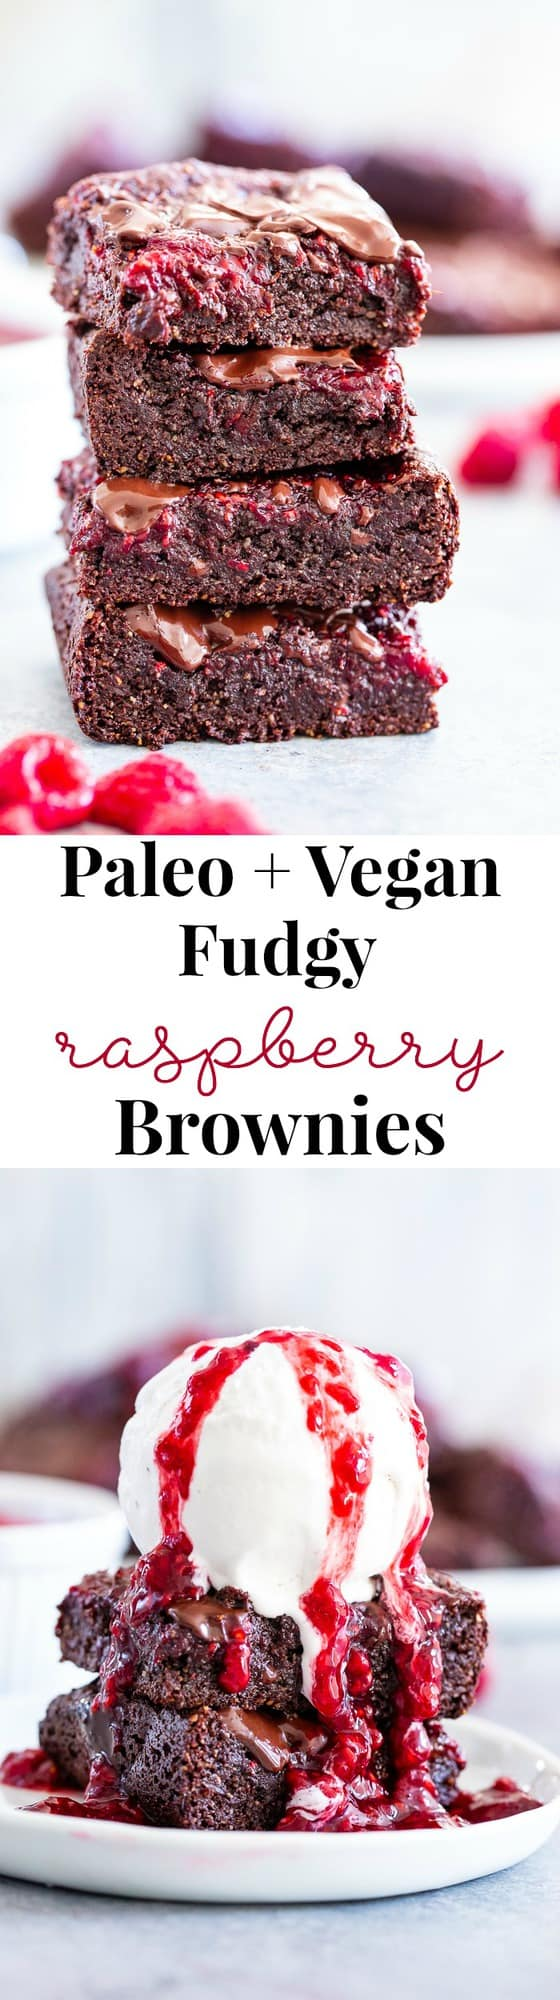 These insanely fudgy raspberry brownies are easy to whip up and just happen to be good for you!  Rich chocolate paleo and vegan brownie batter is baked with an easy raspberry sauce for the ultimate fruit and chocolate combo.  They're gluten-free, dairy-free, and completely addicting!